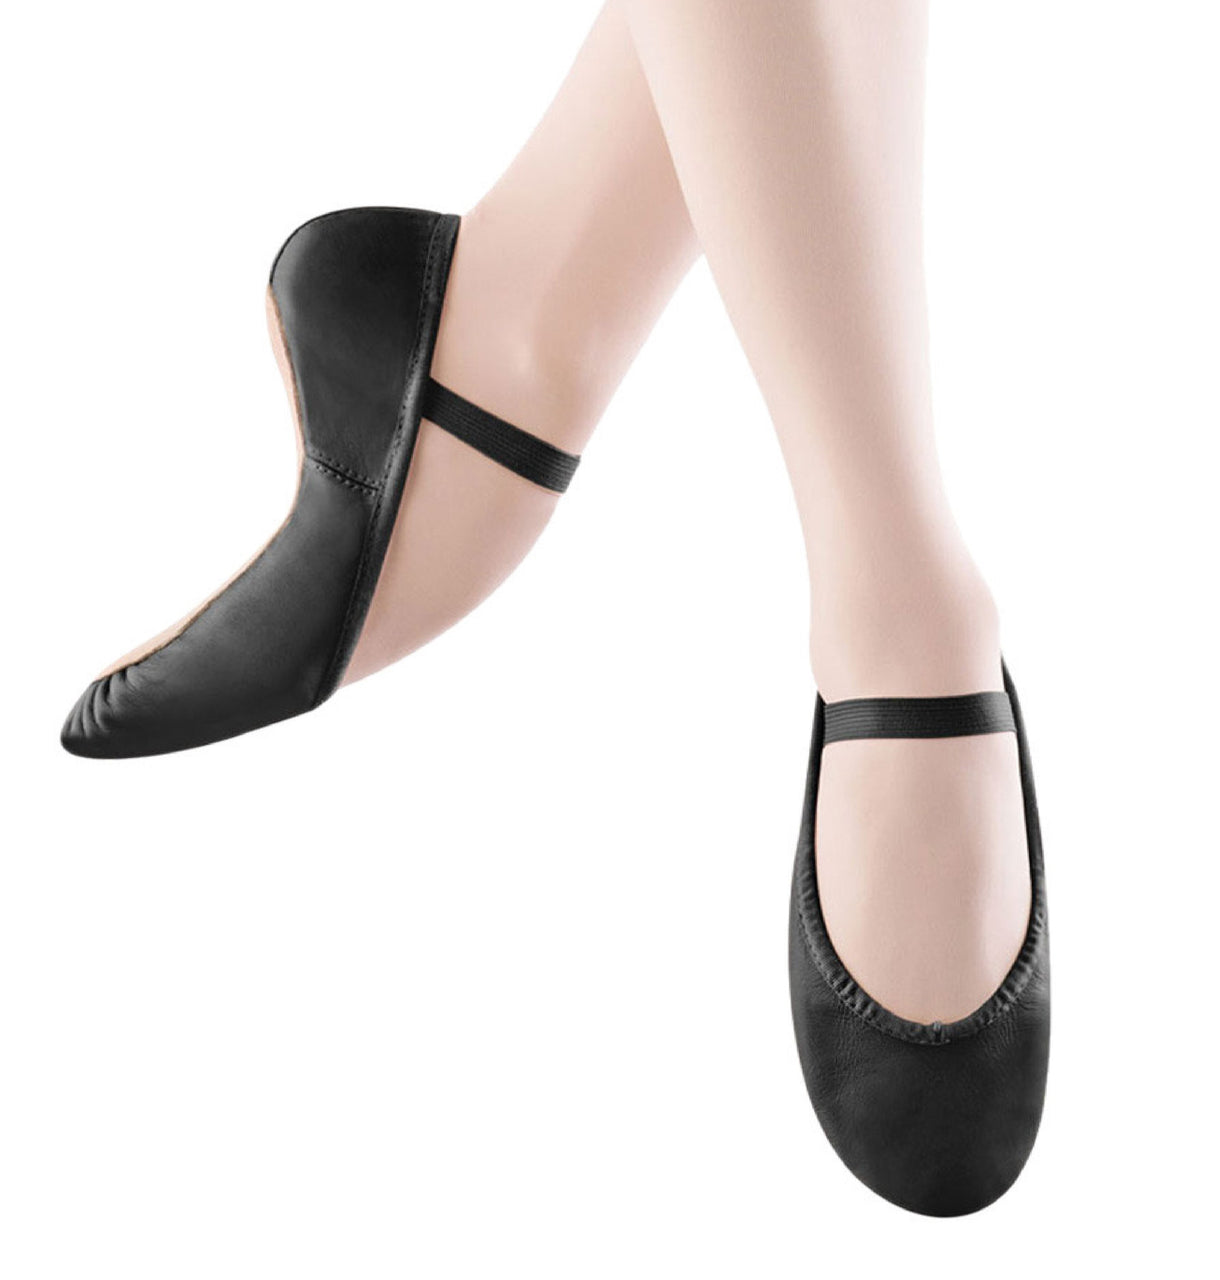 Bloch S0205L - Dansoft Ballet Shoe Black Ladies